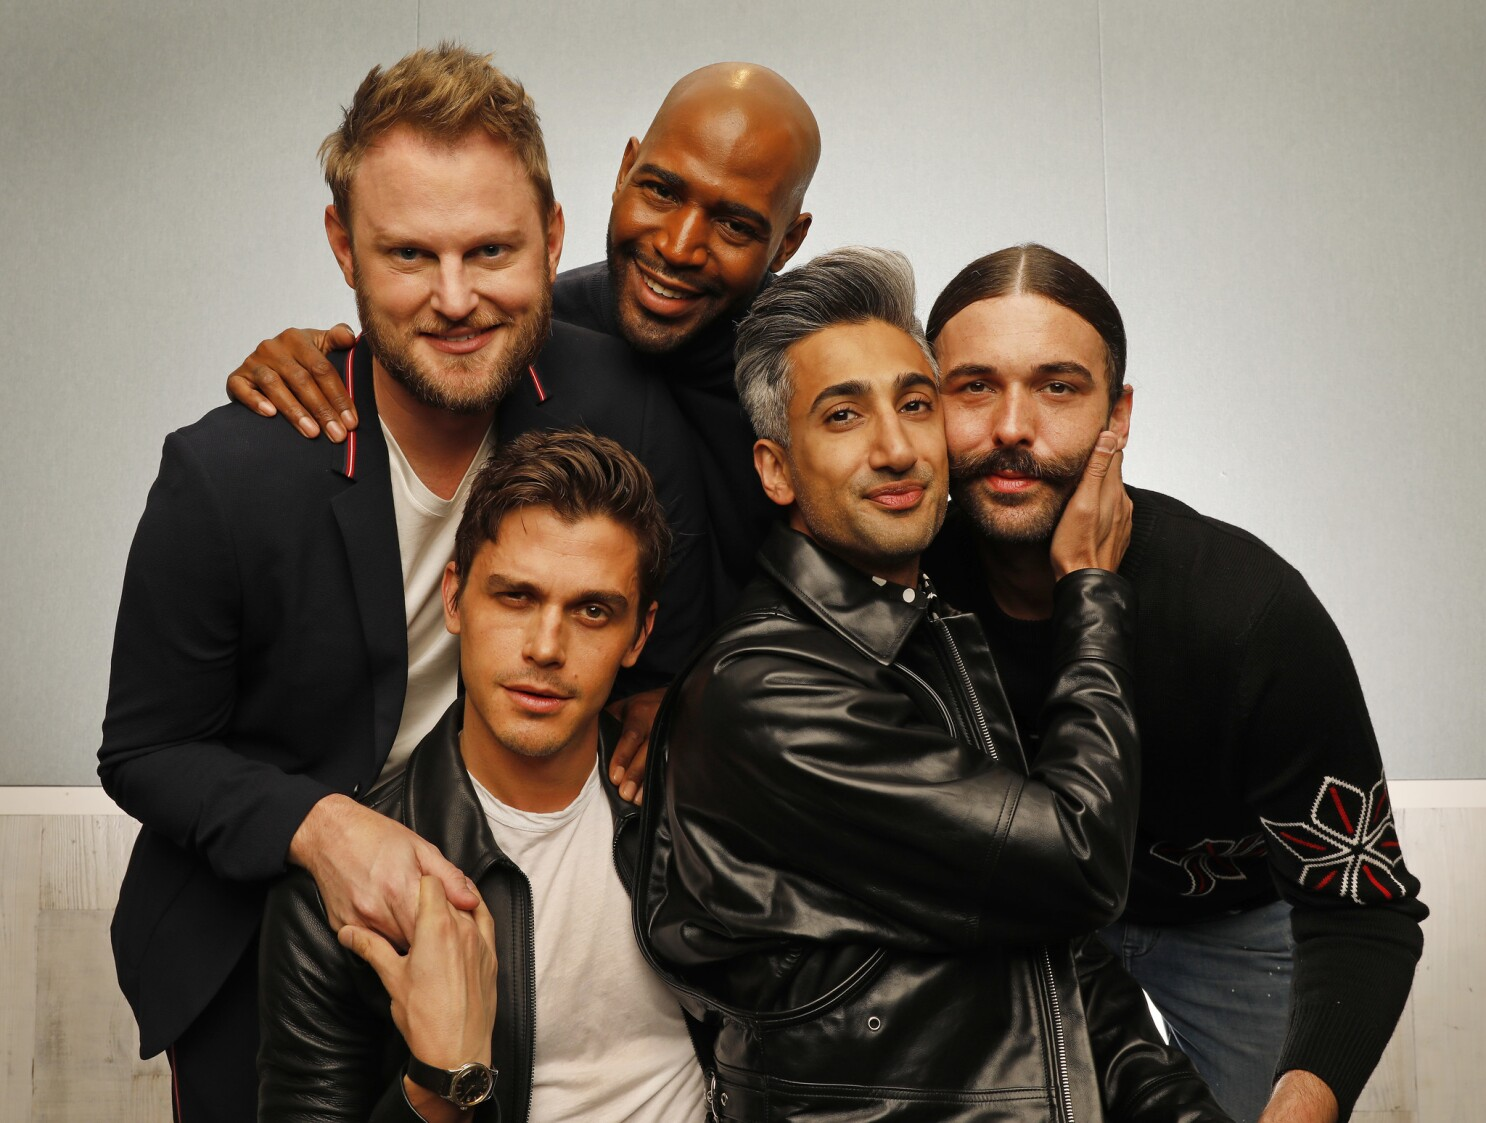 Queer Eye's' Tan France details racism and self-love in his book 'Naturally Tan'